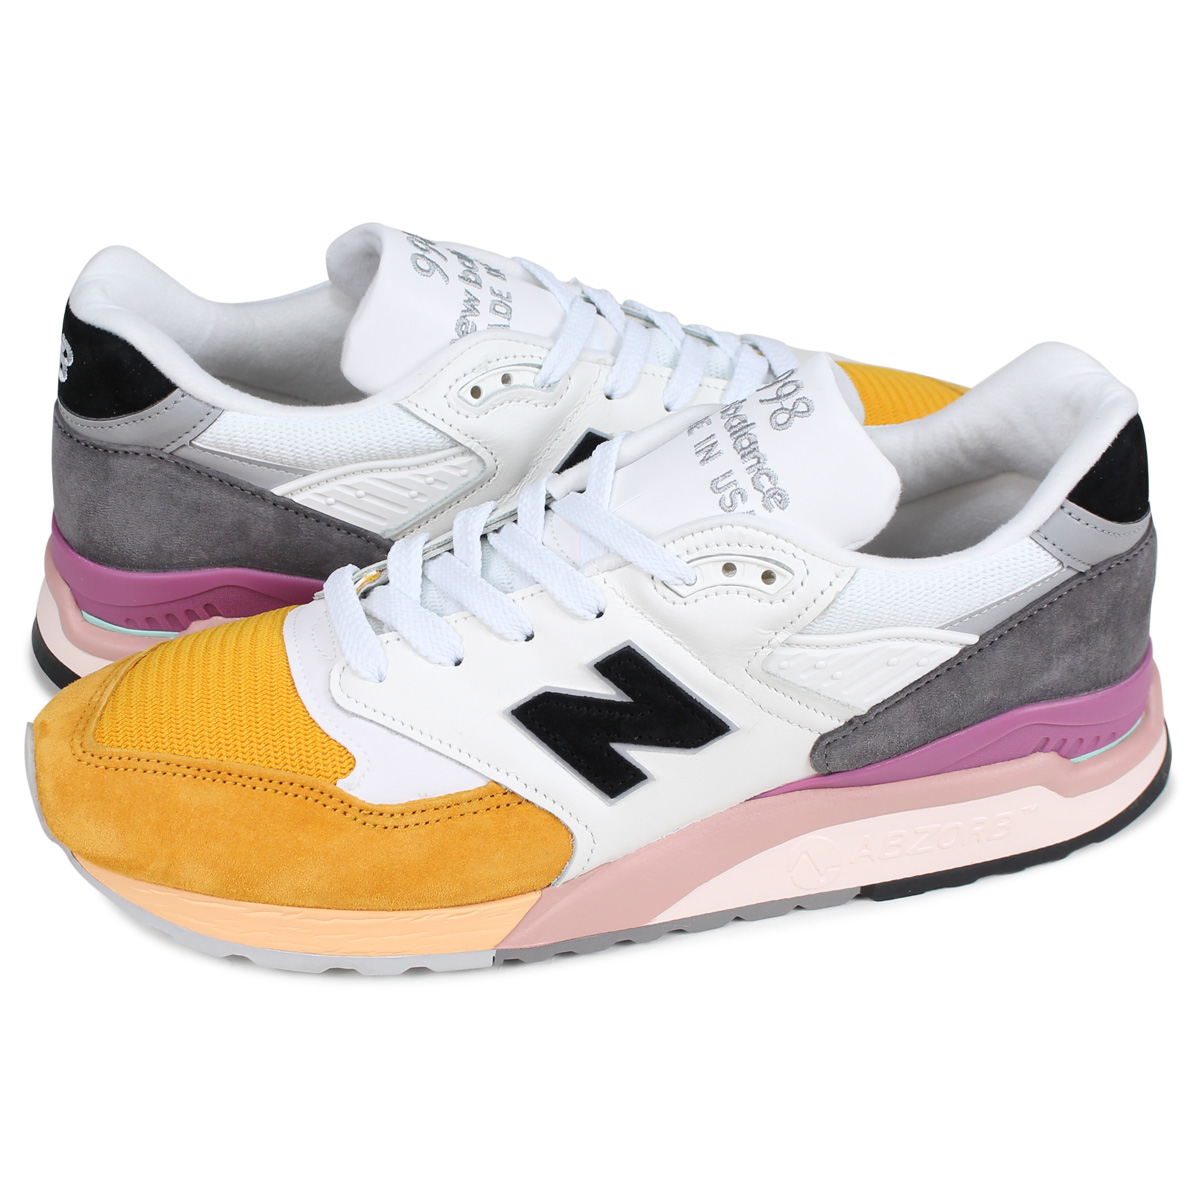 super popular b462f 5670d new balance M998PSD New Balance 998 sneakers men D Wise MADE IN USA white  white [195]